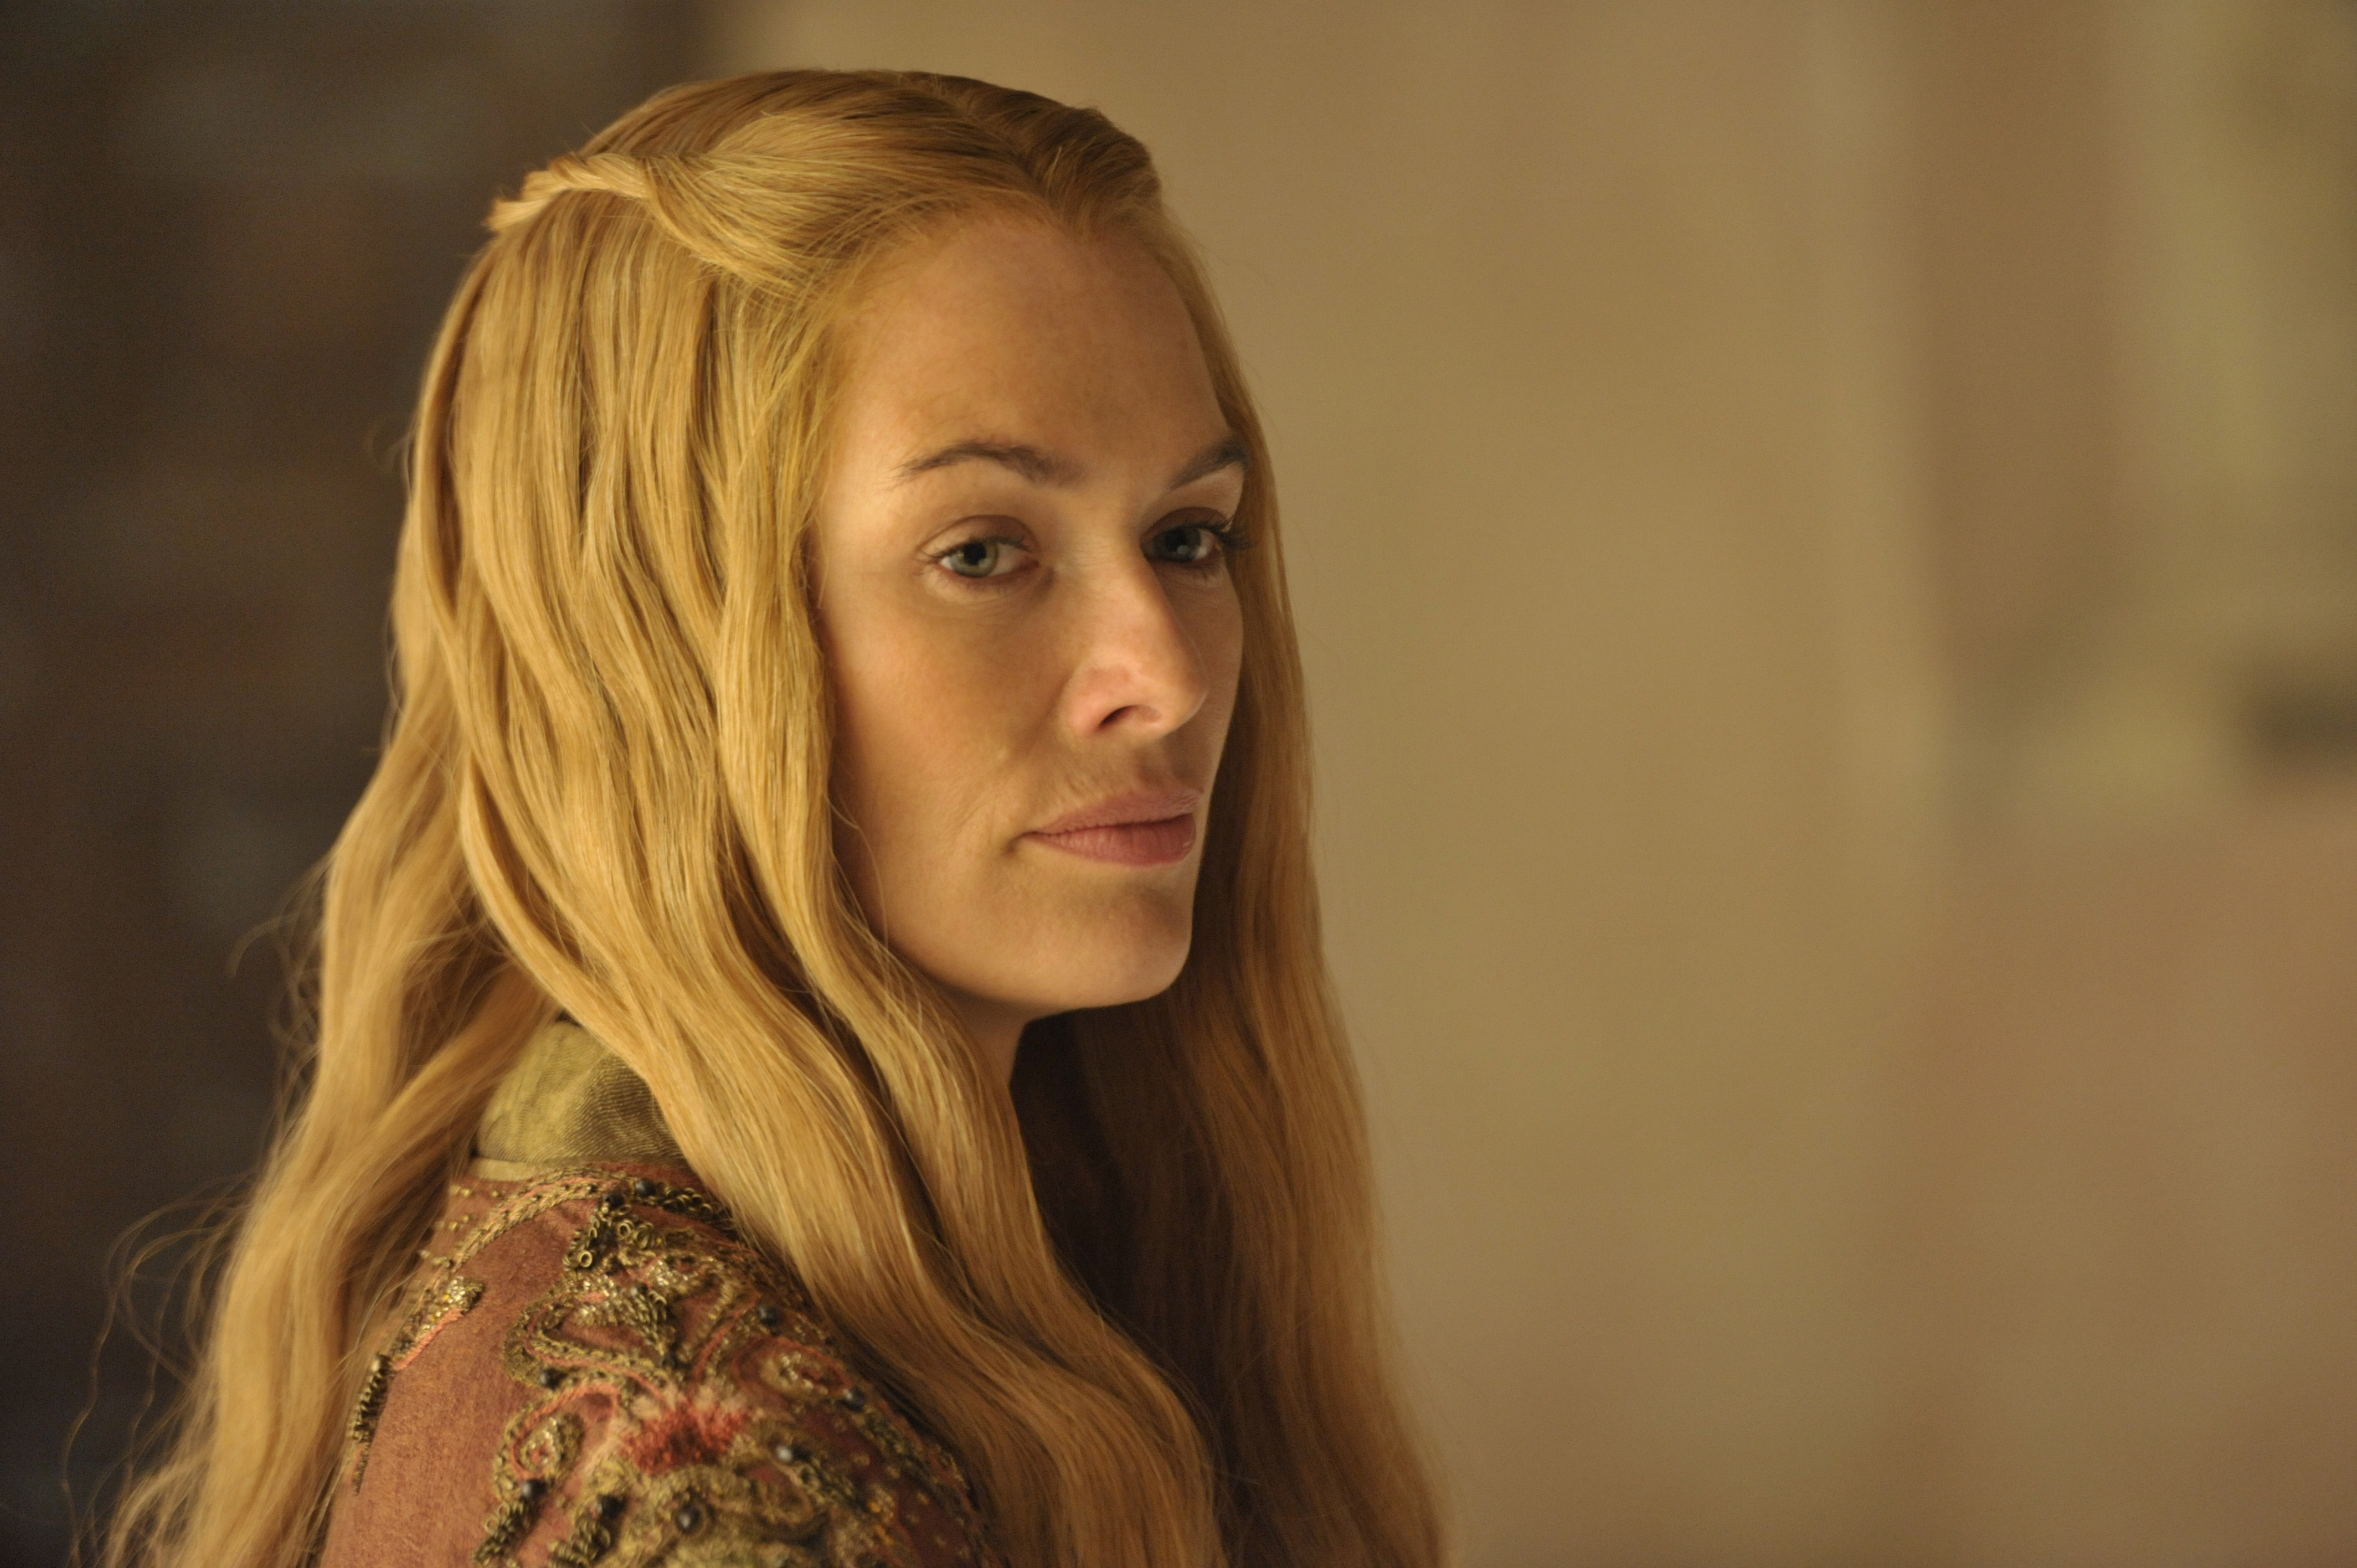 HBO reportedly paid a hefty price to film 'Game of Thrones' Lena Headey nude scene